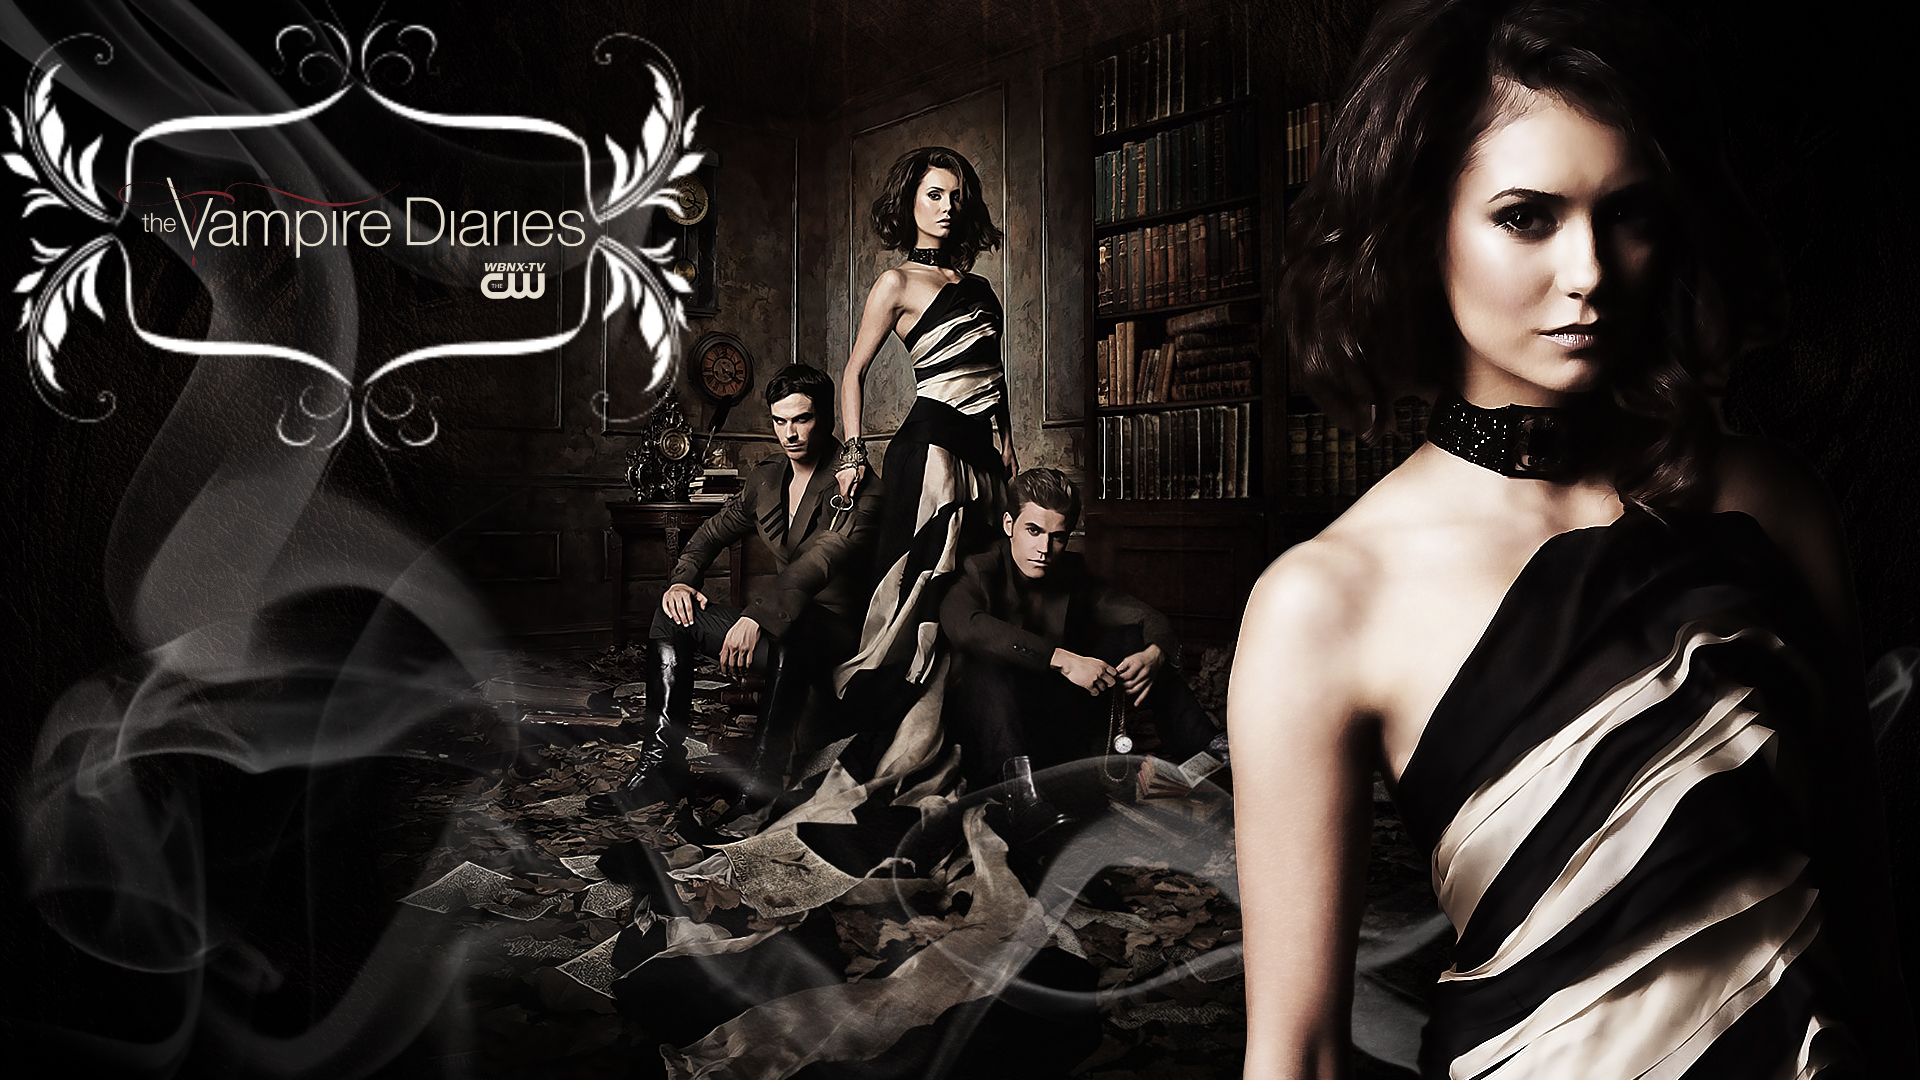 48+ The Vampire Diaries HD Wallpapers on WallpaperSafari